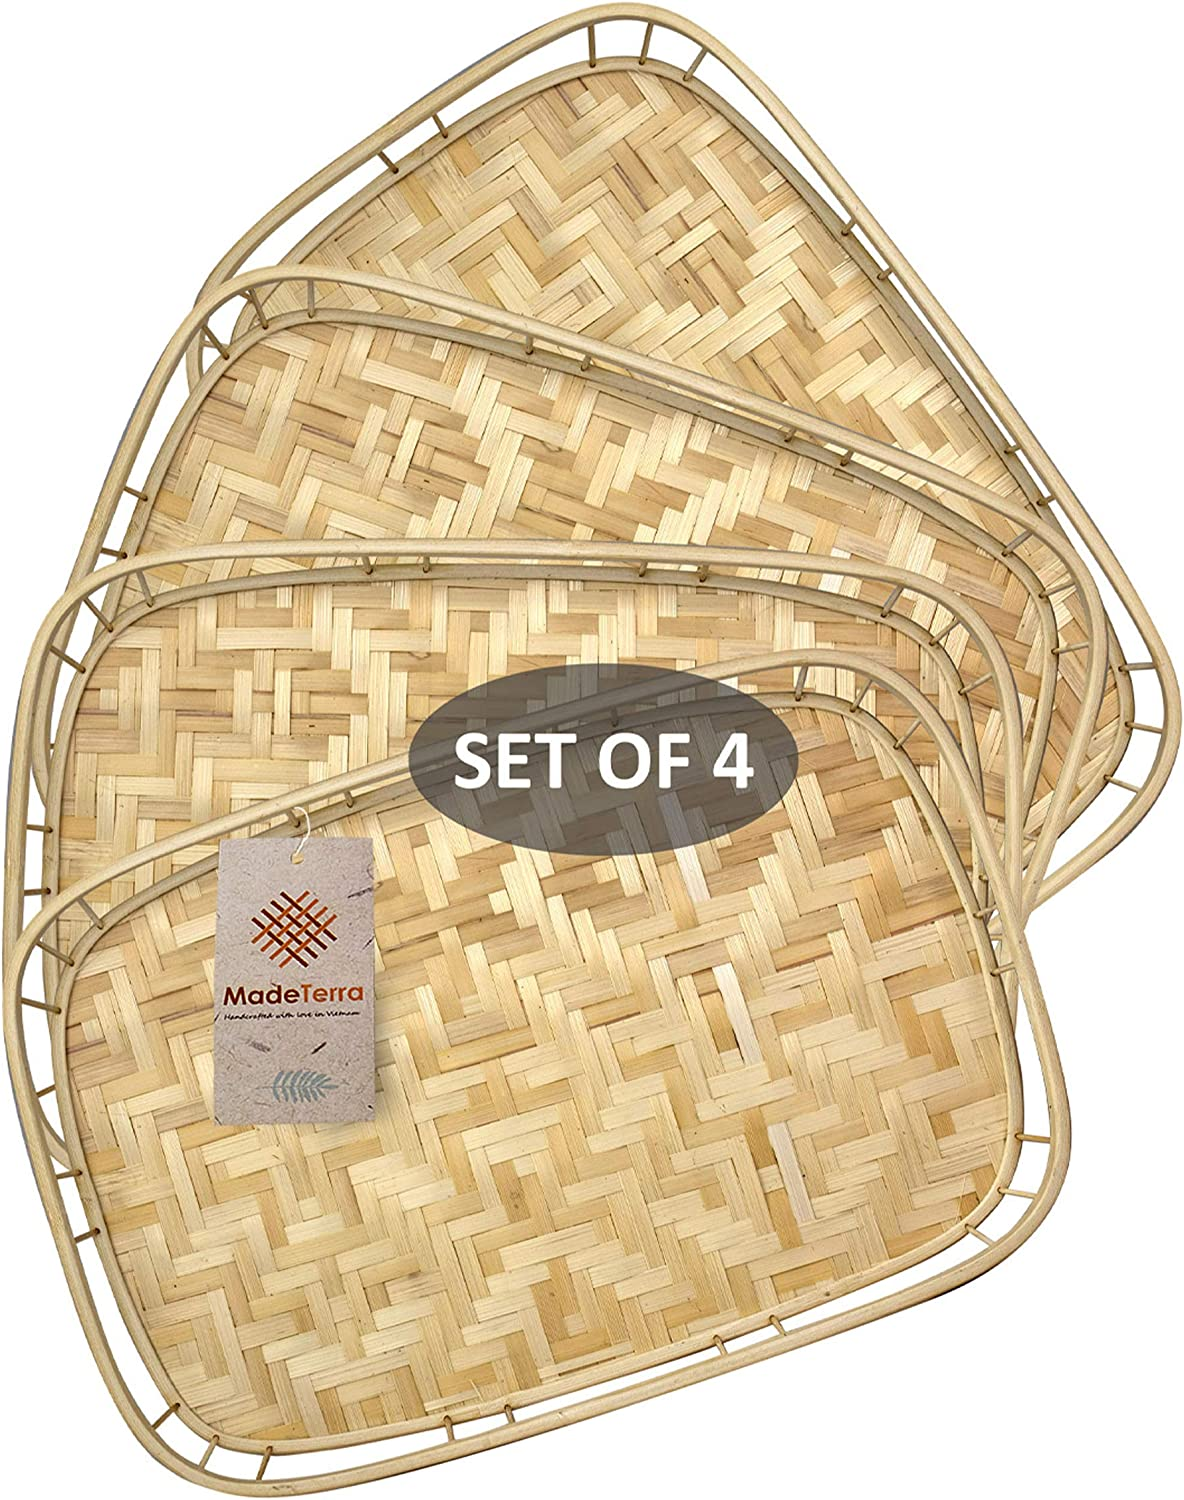 Set of 4 Pack Rectangular Bamboo Wicker Serving Trays with Handles, Handwoven Coffee Trays for Coffee, Breakfast, Bread, Food, Dish and Decorative Trays for Dining Table